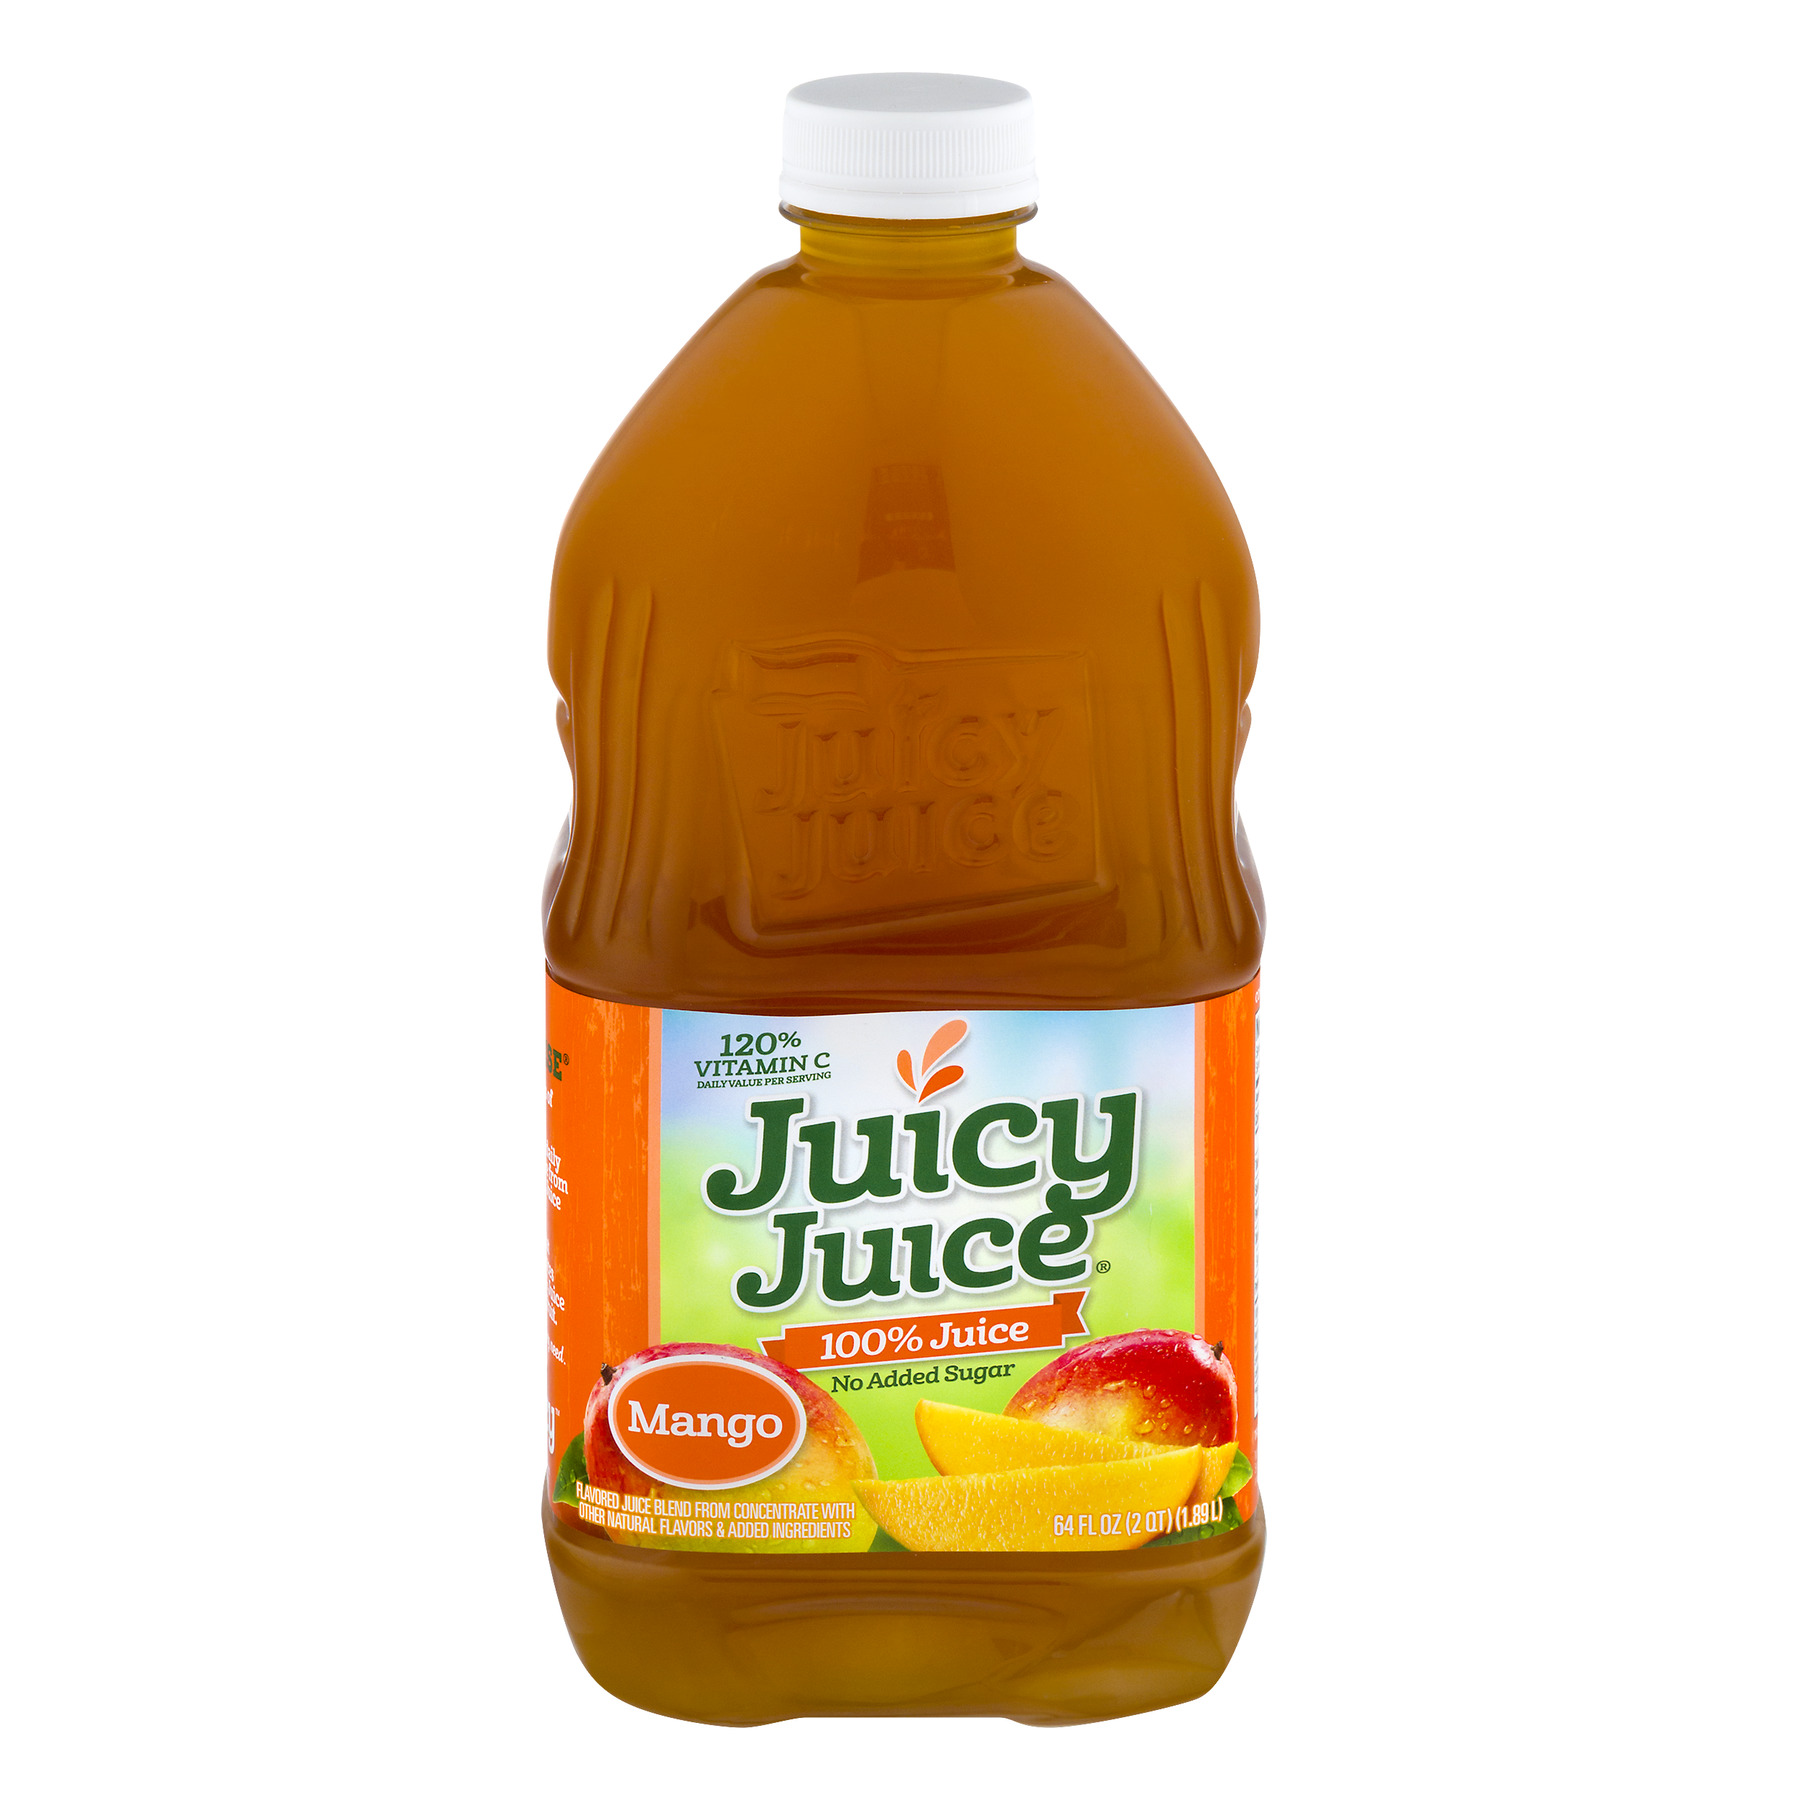 Juicy Juice 100% Juice, Mango, 64 Fl Oz, 1 Count